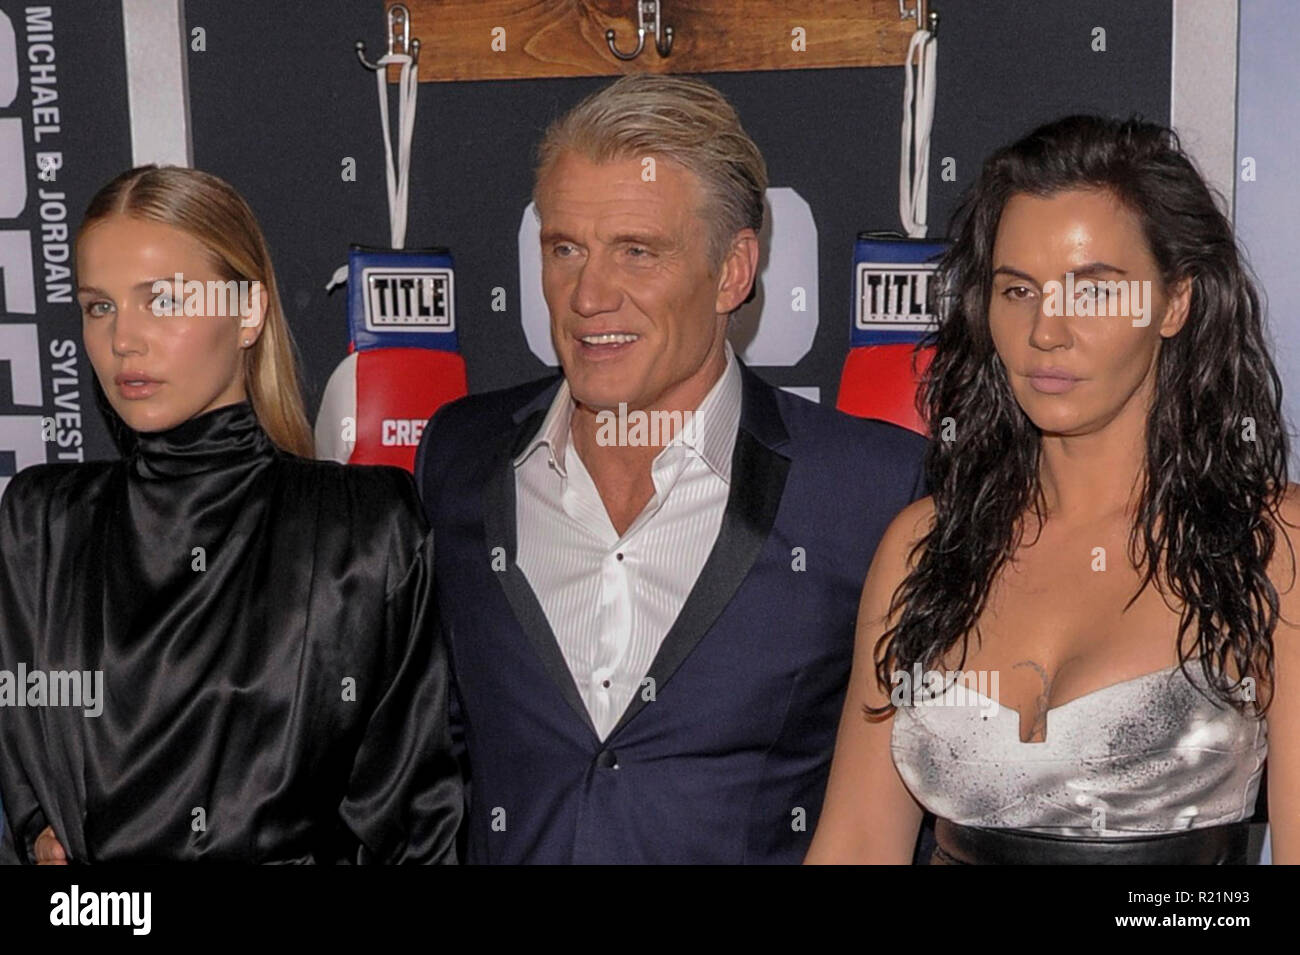 NEW YORK, NY - NOV 14, 2018: Greta Lundgren , Dolph Lundgren and Jenny Sandersson attend 'Creed II' World Premiere at AMC Loews Lincoln Square. - Stock Image